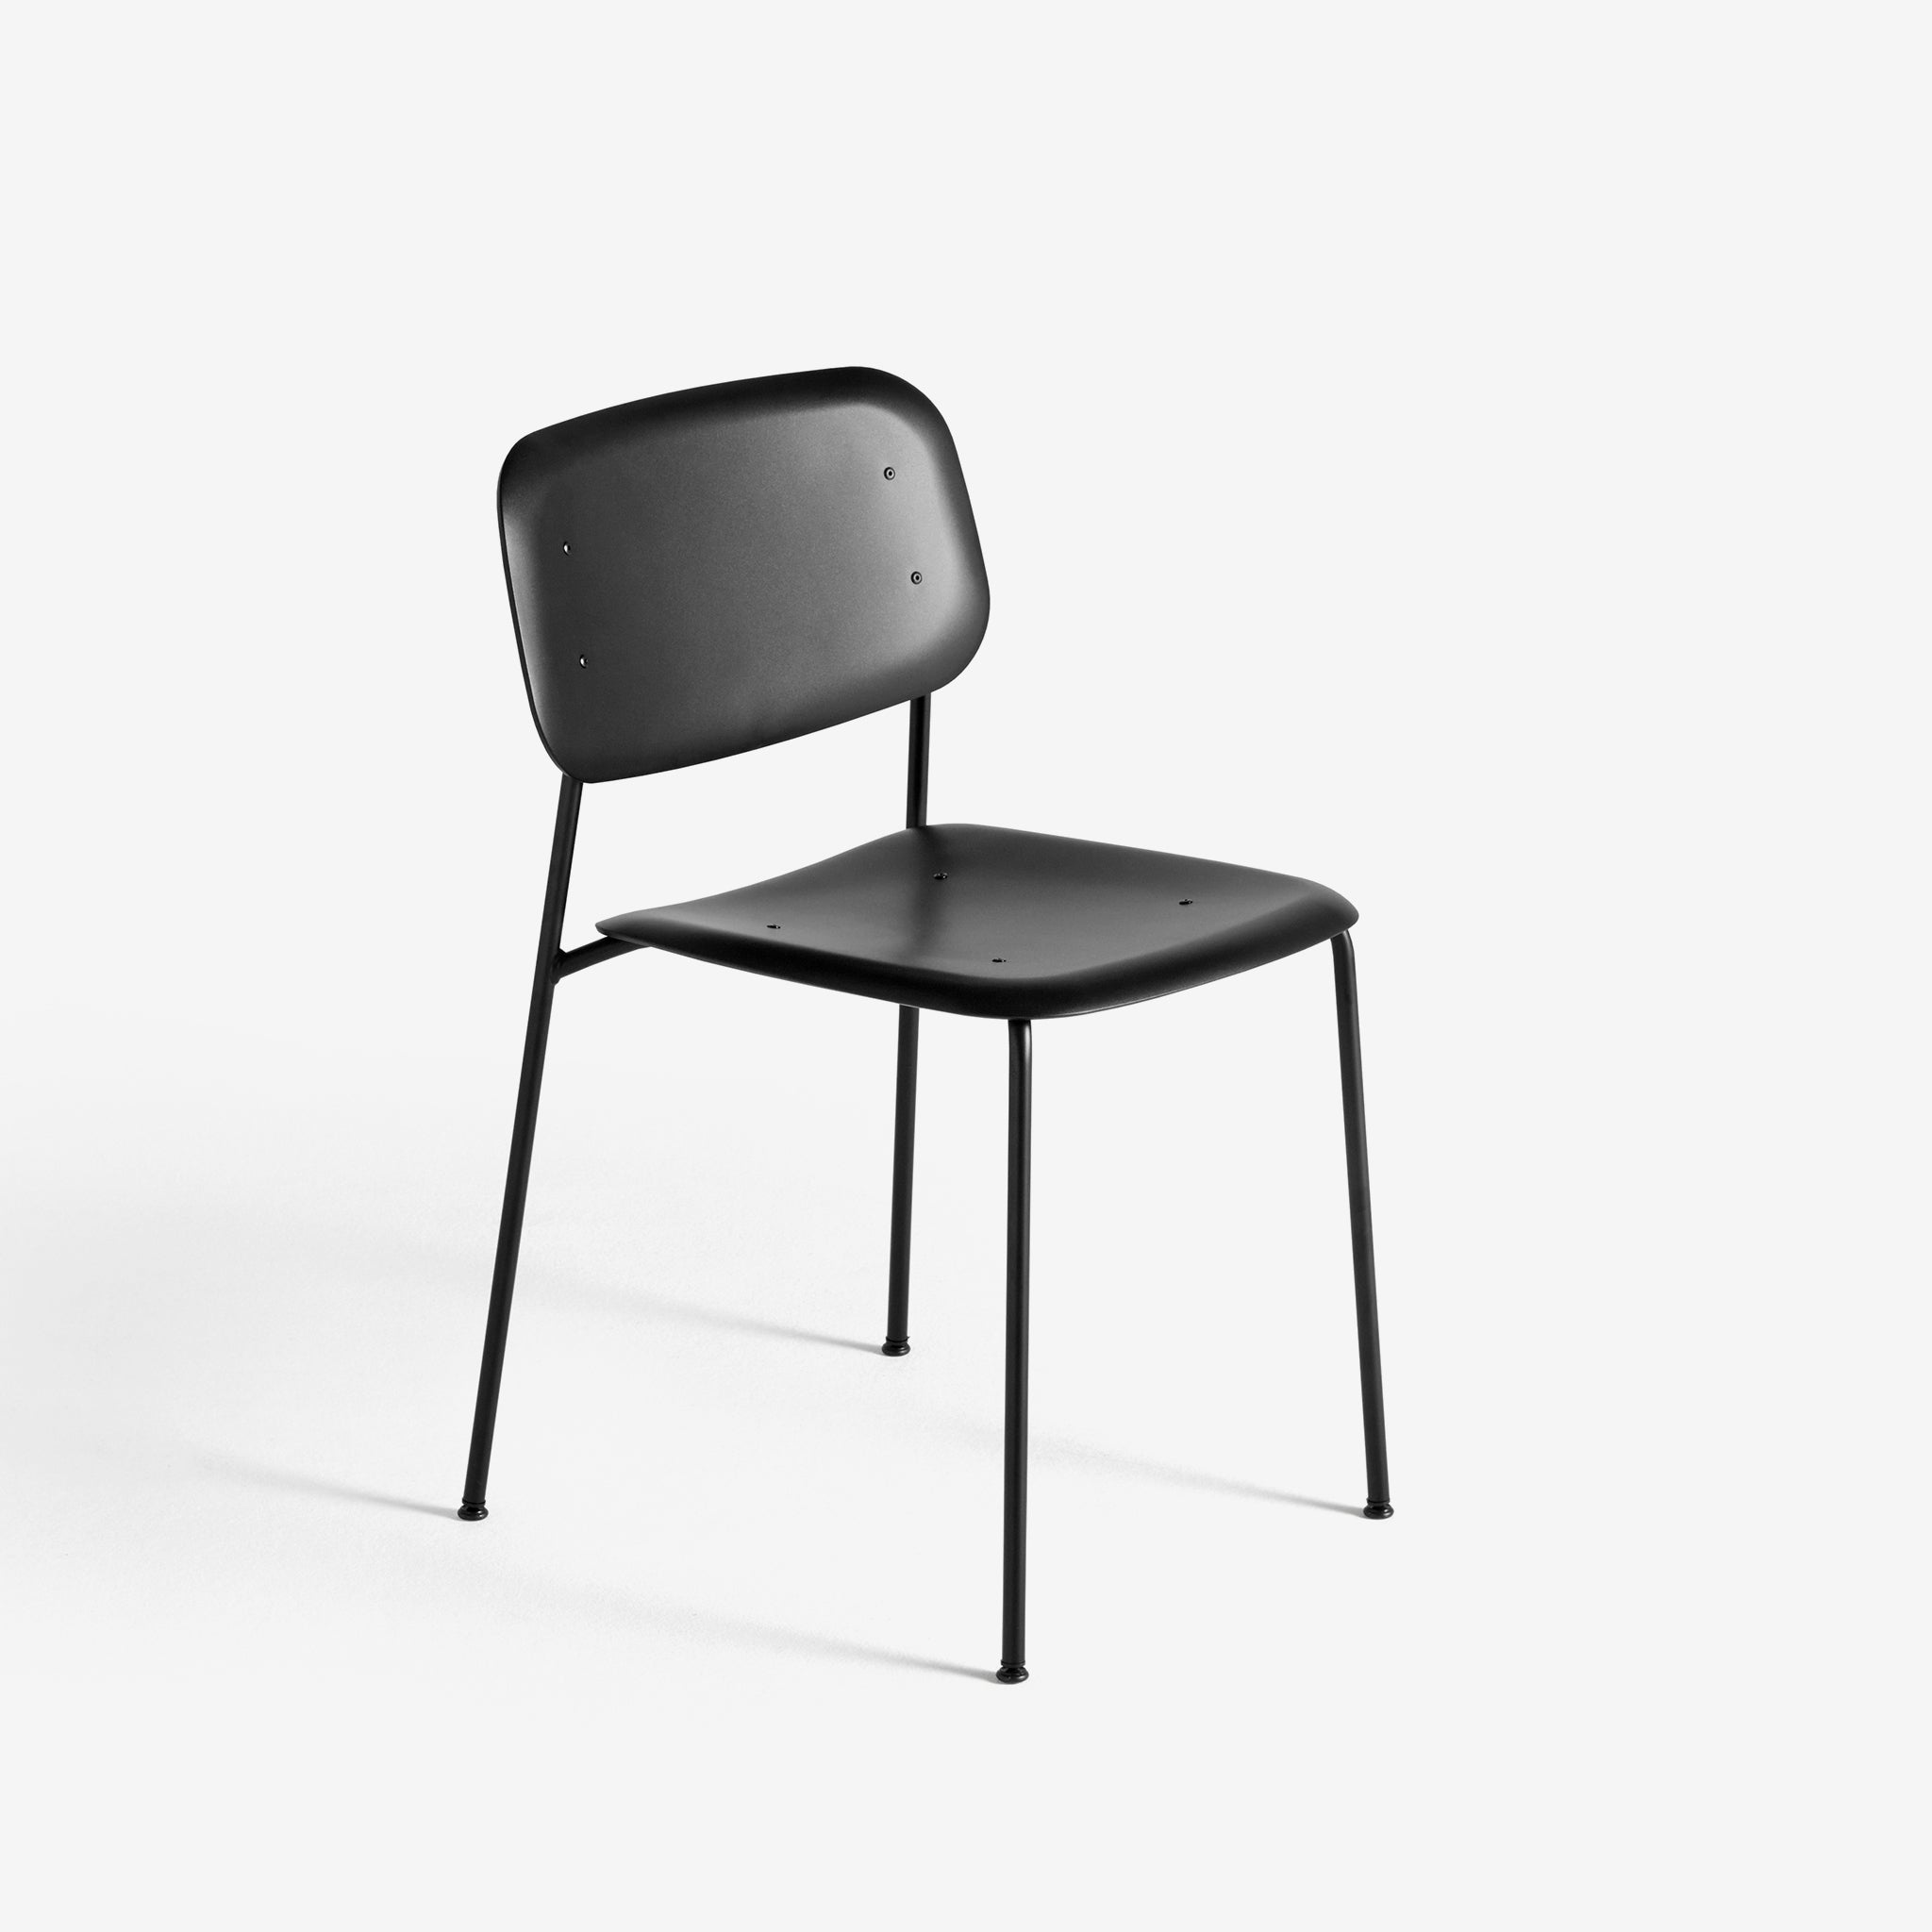 Soft Edge P10 Chair, Polypropylene Seat